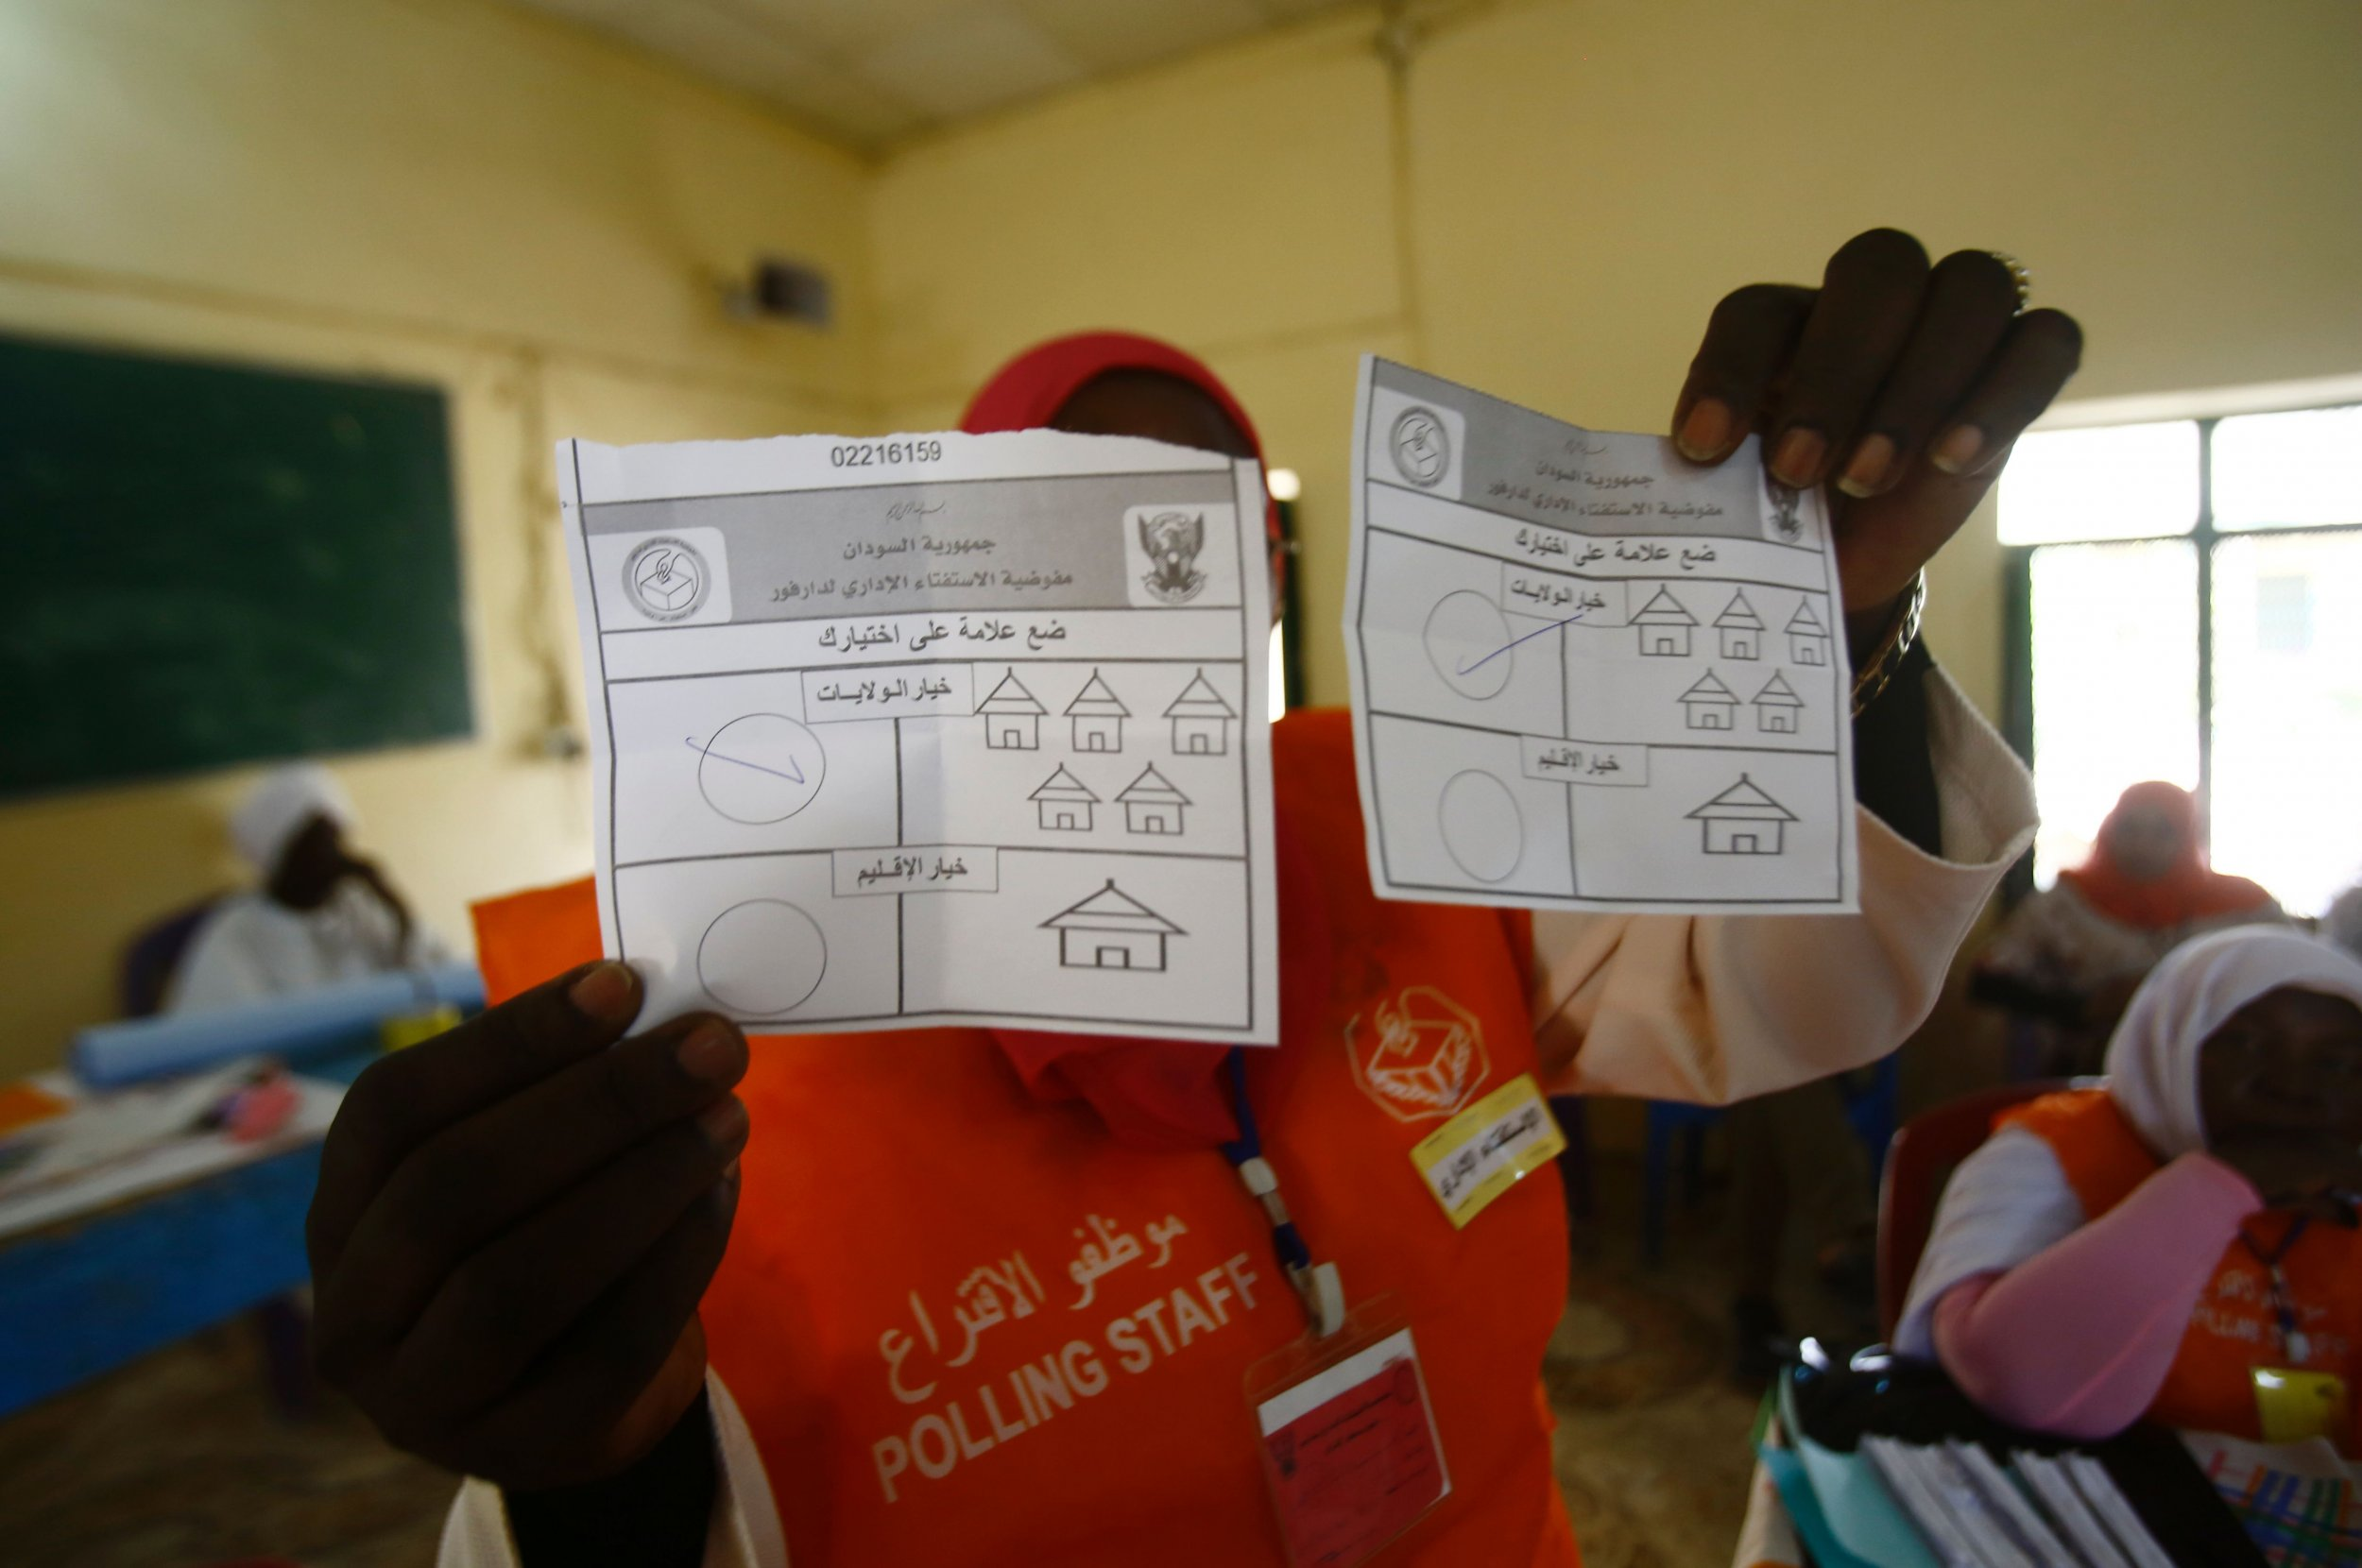 Darfur votes counted in Sudan.